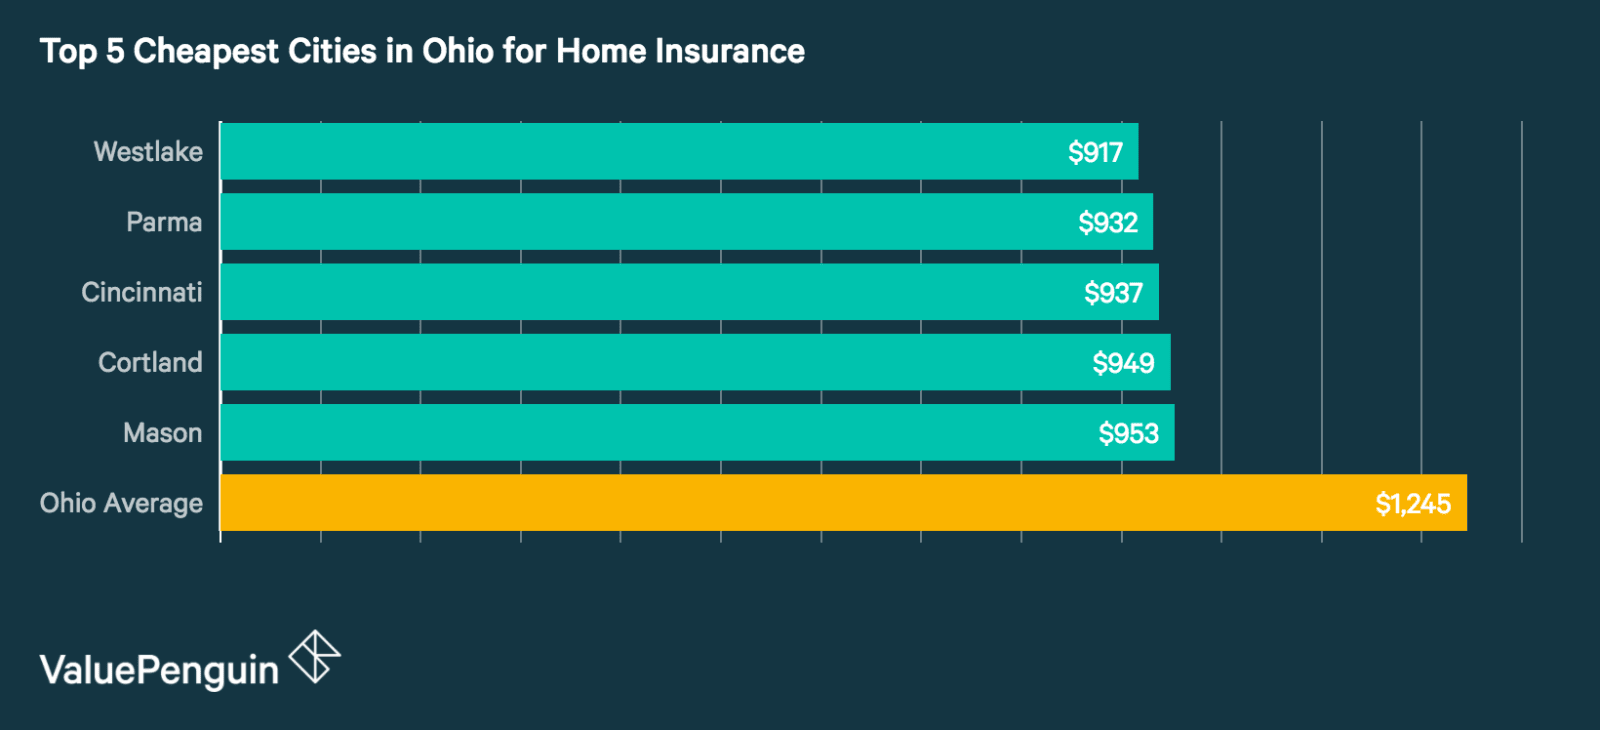 Top 5 Cheapest Cities in Ohio for Homeowners Insurance